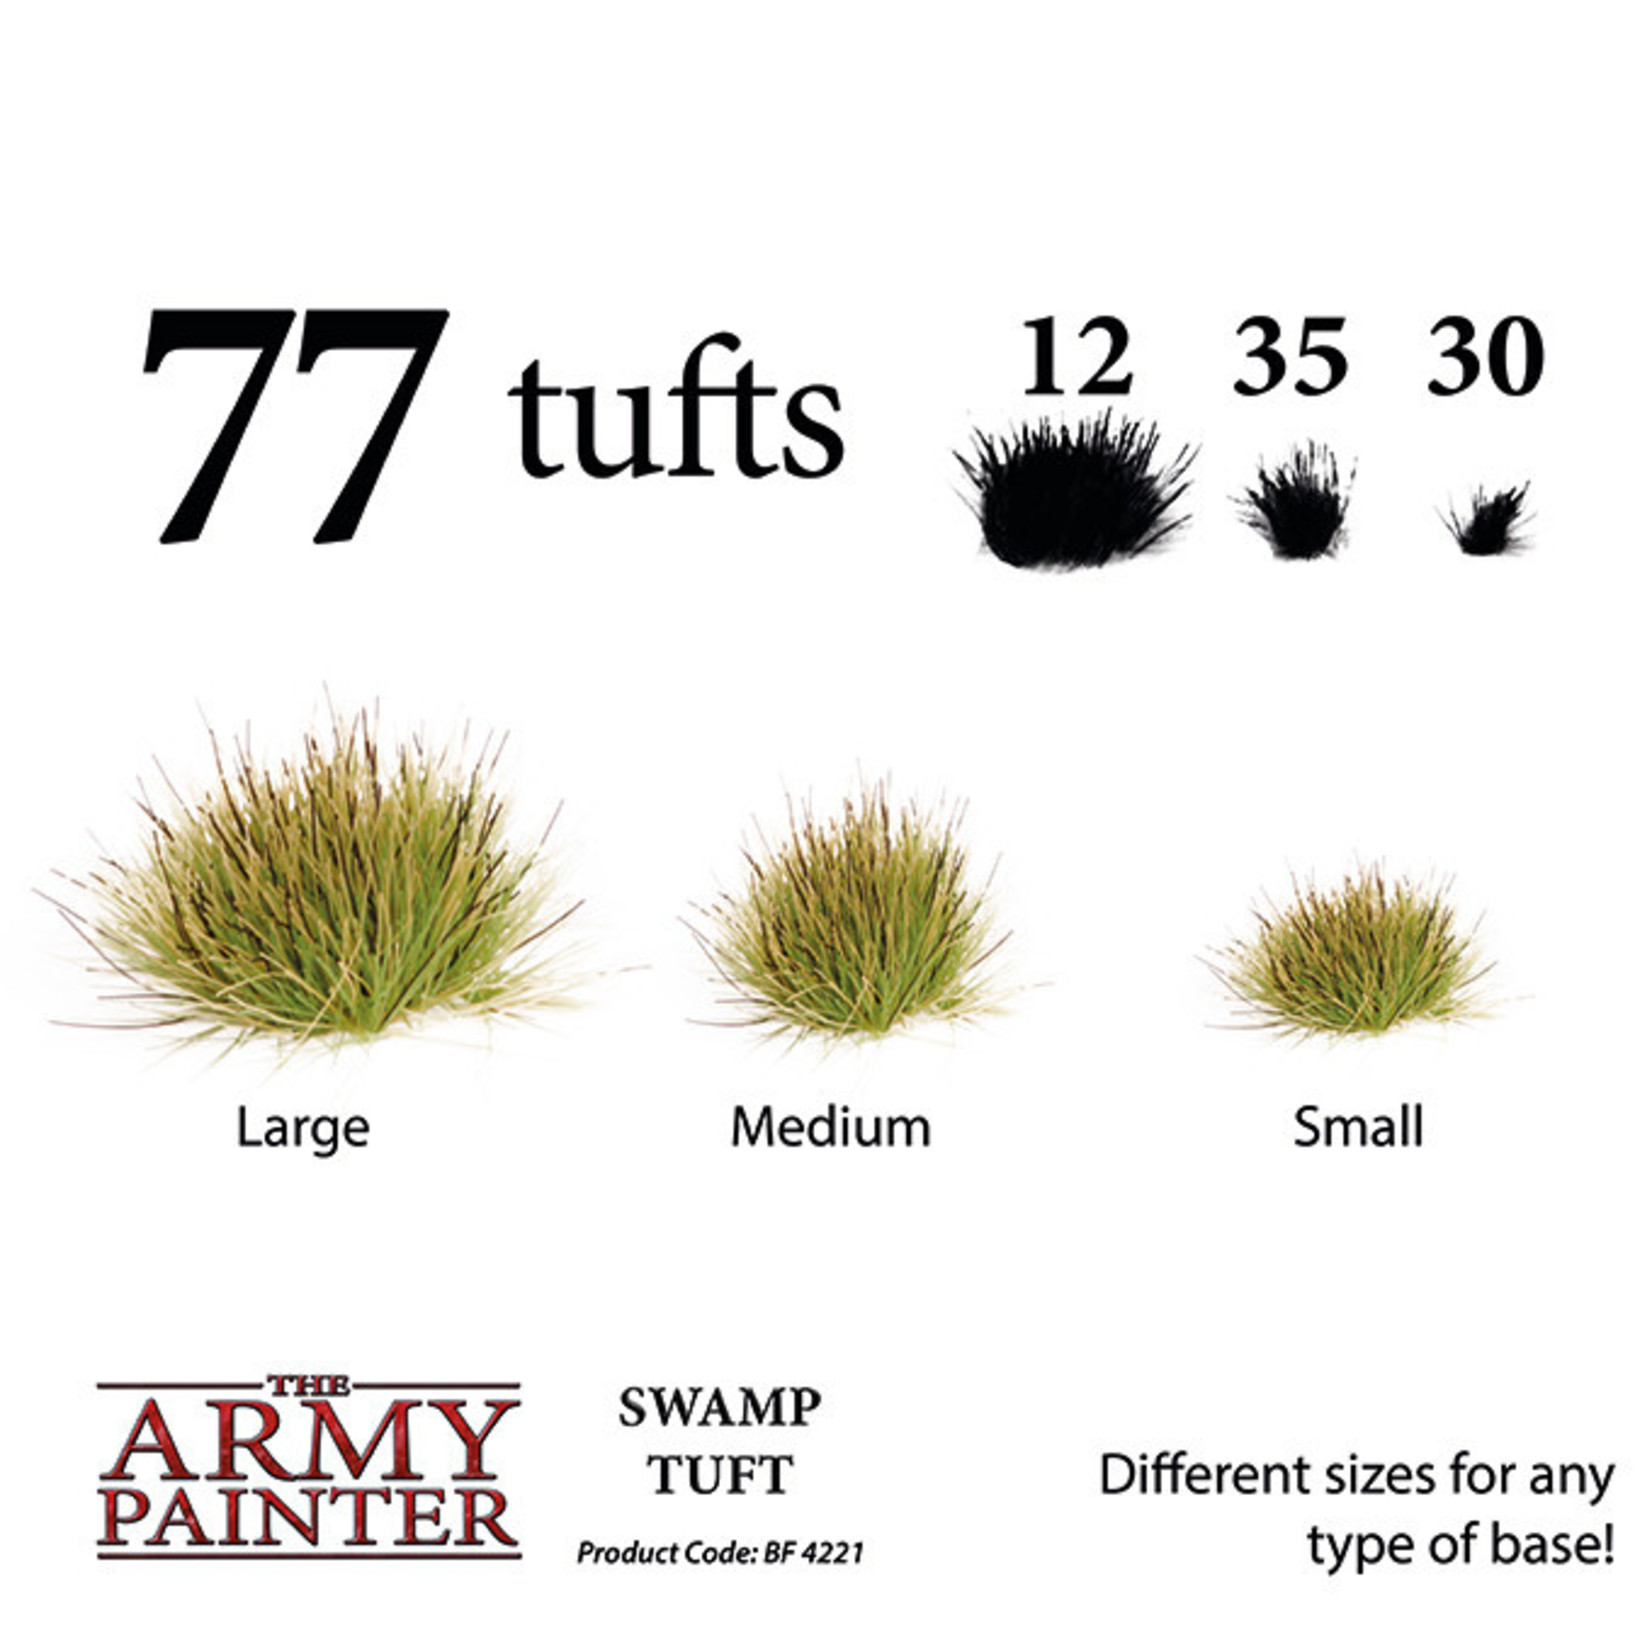 The Army Painter Battlefields: Swamp Tuft (2019)